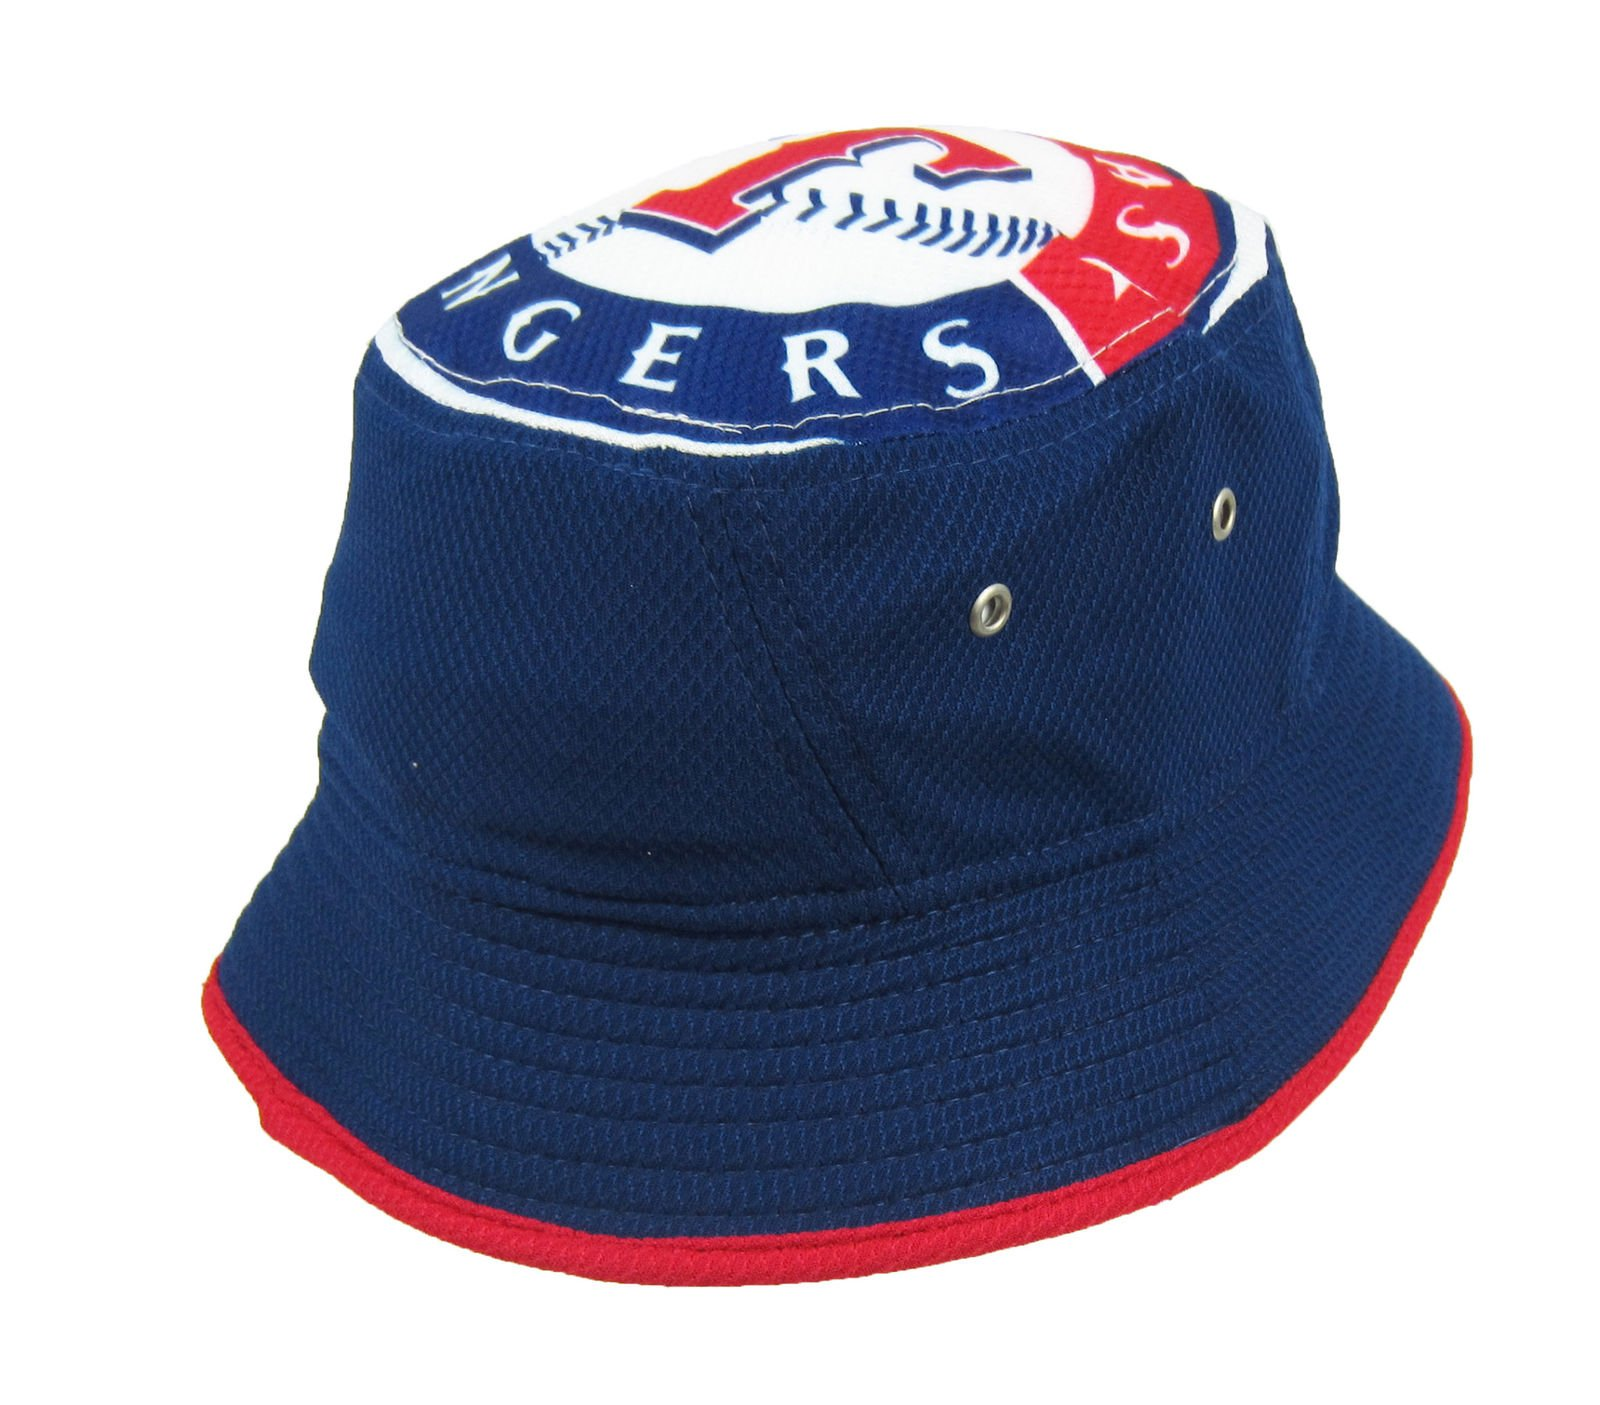 00efa6c1888b2f New Era Kids MLB Texas Rangers Bucket Hat Child-Youth One Size NWT ...